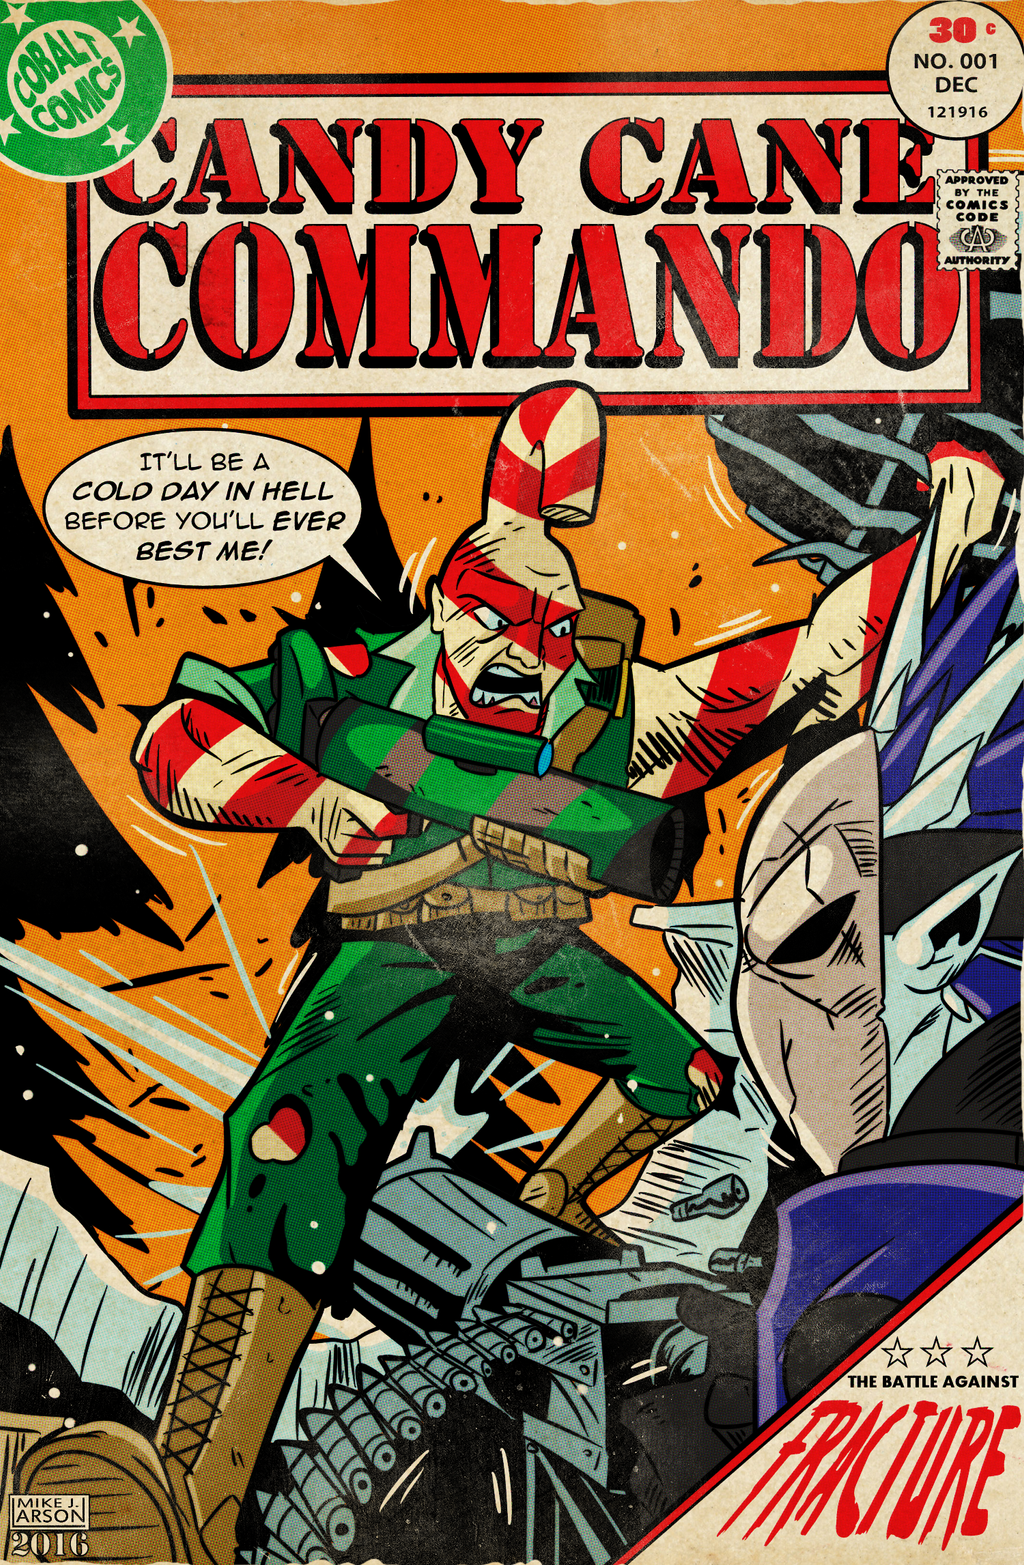 Cobaltkatdrone Commission: Candy Cane Commando by MichaelJLarson